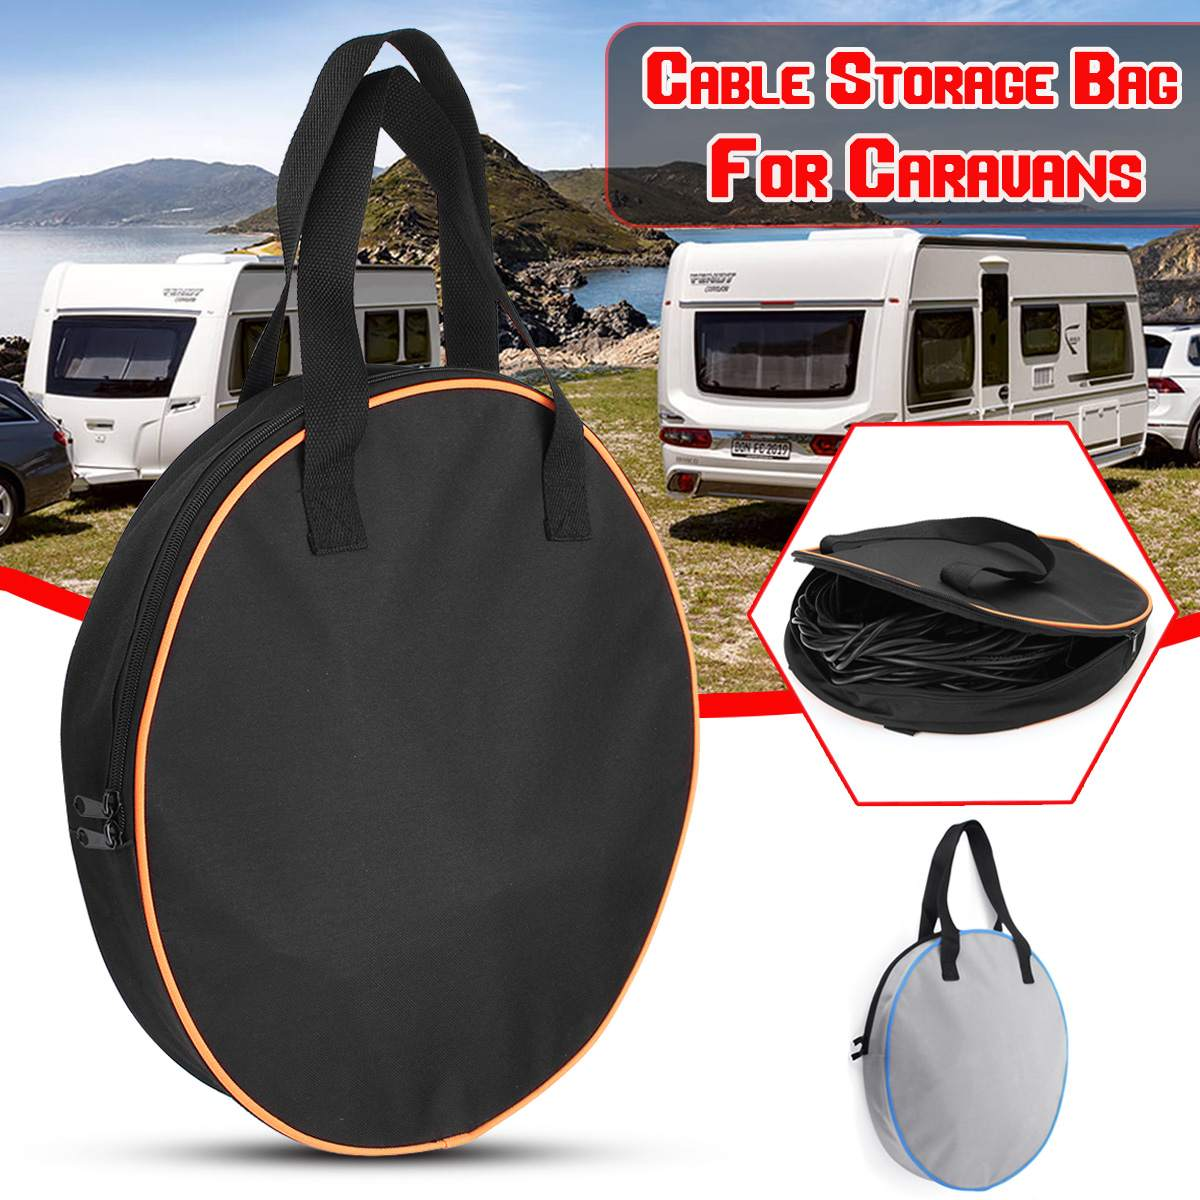 us $8 28 7% off car rv caravans wire cable harness storage bag case motorhome gardening portable heavy duty cable organizer in rv parts & accessories gy6 wiring harness motorhome wire harness #10